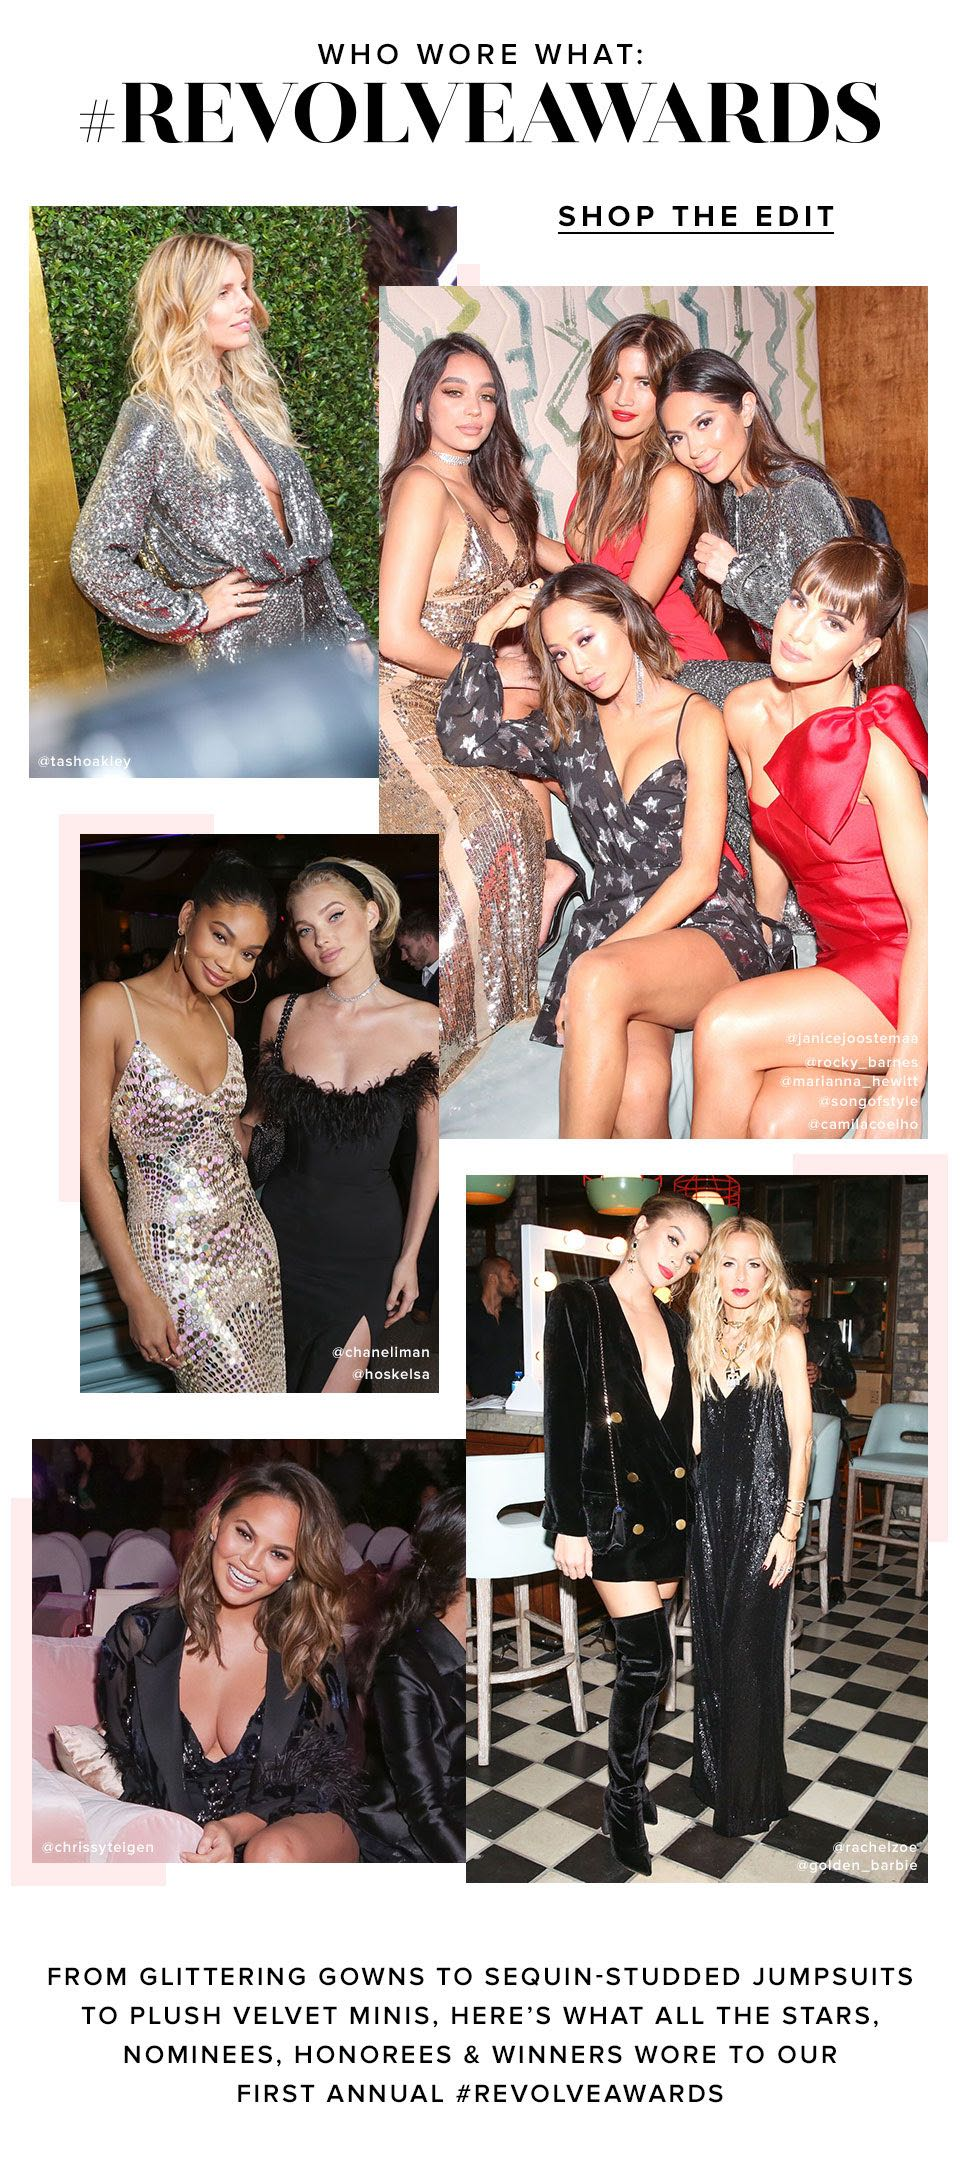 Who Wore What: #REVOLVEawards From glittering gowns to sequin-studded jumpsuits to plush velvet minis, here's what all the stars, nominees, honorees & winners wore to our first annual #REVOLVEawards